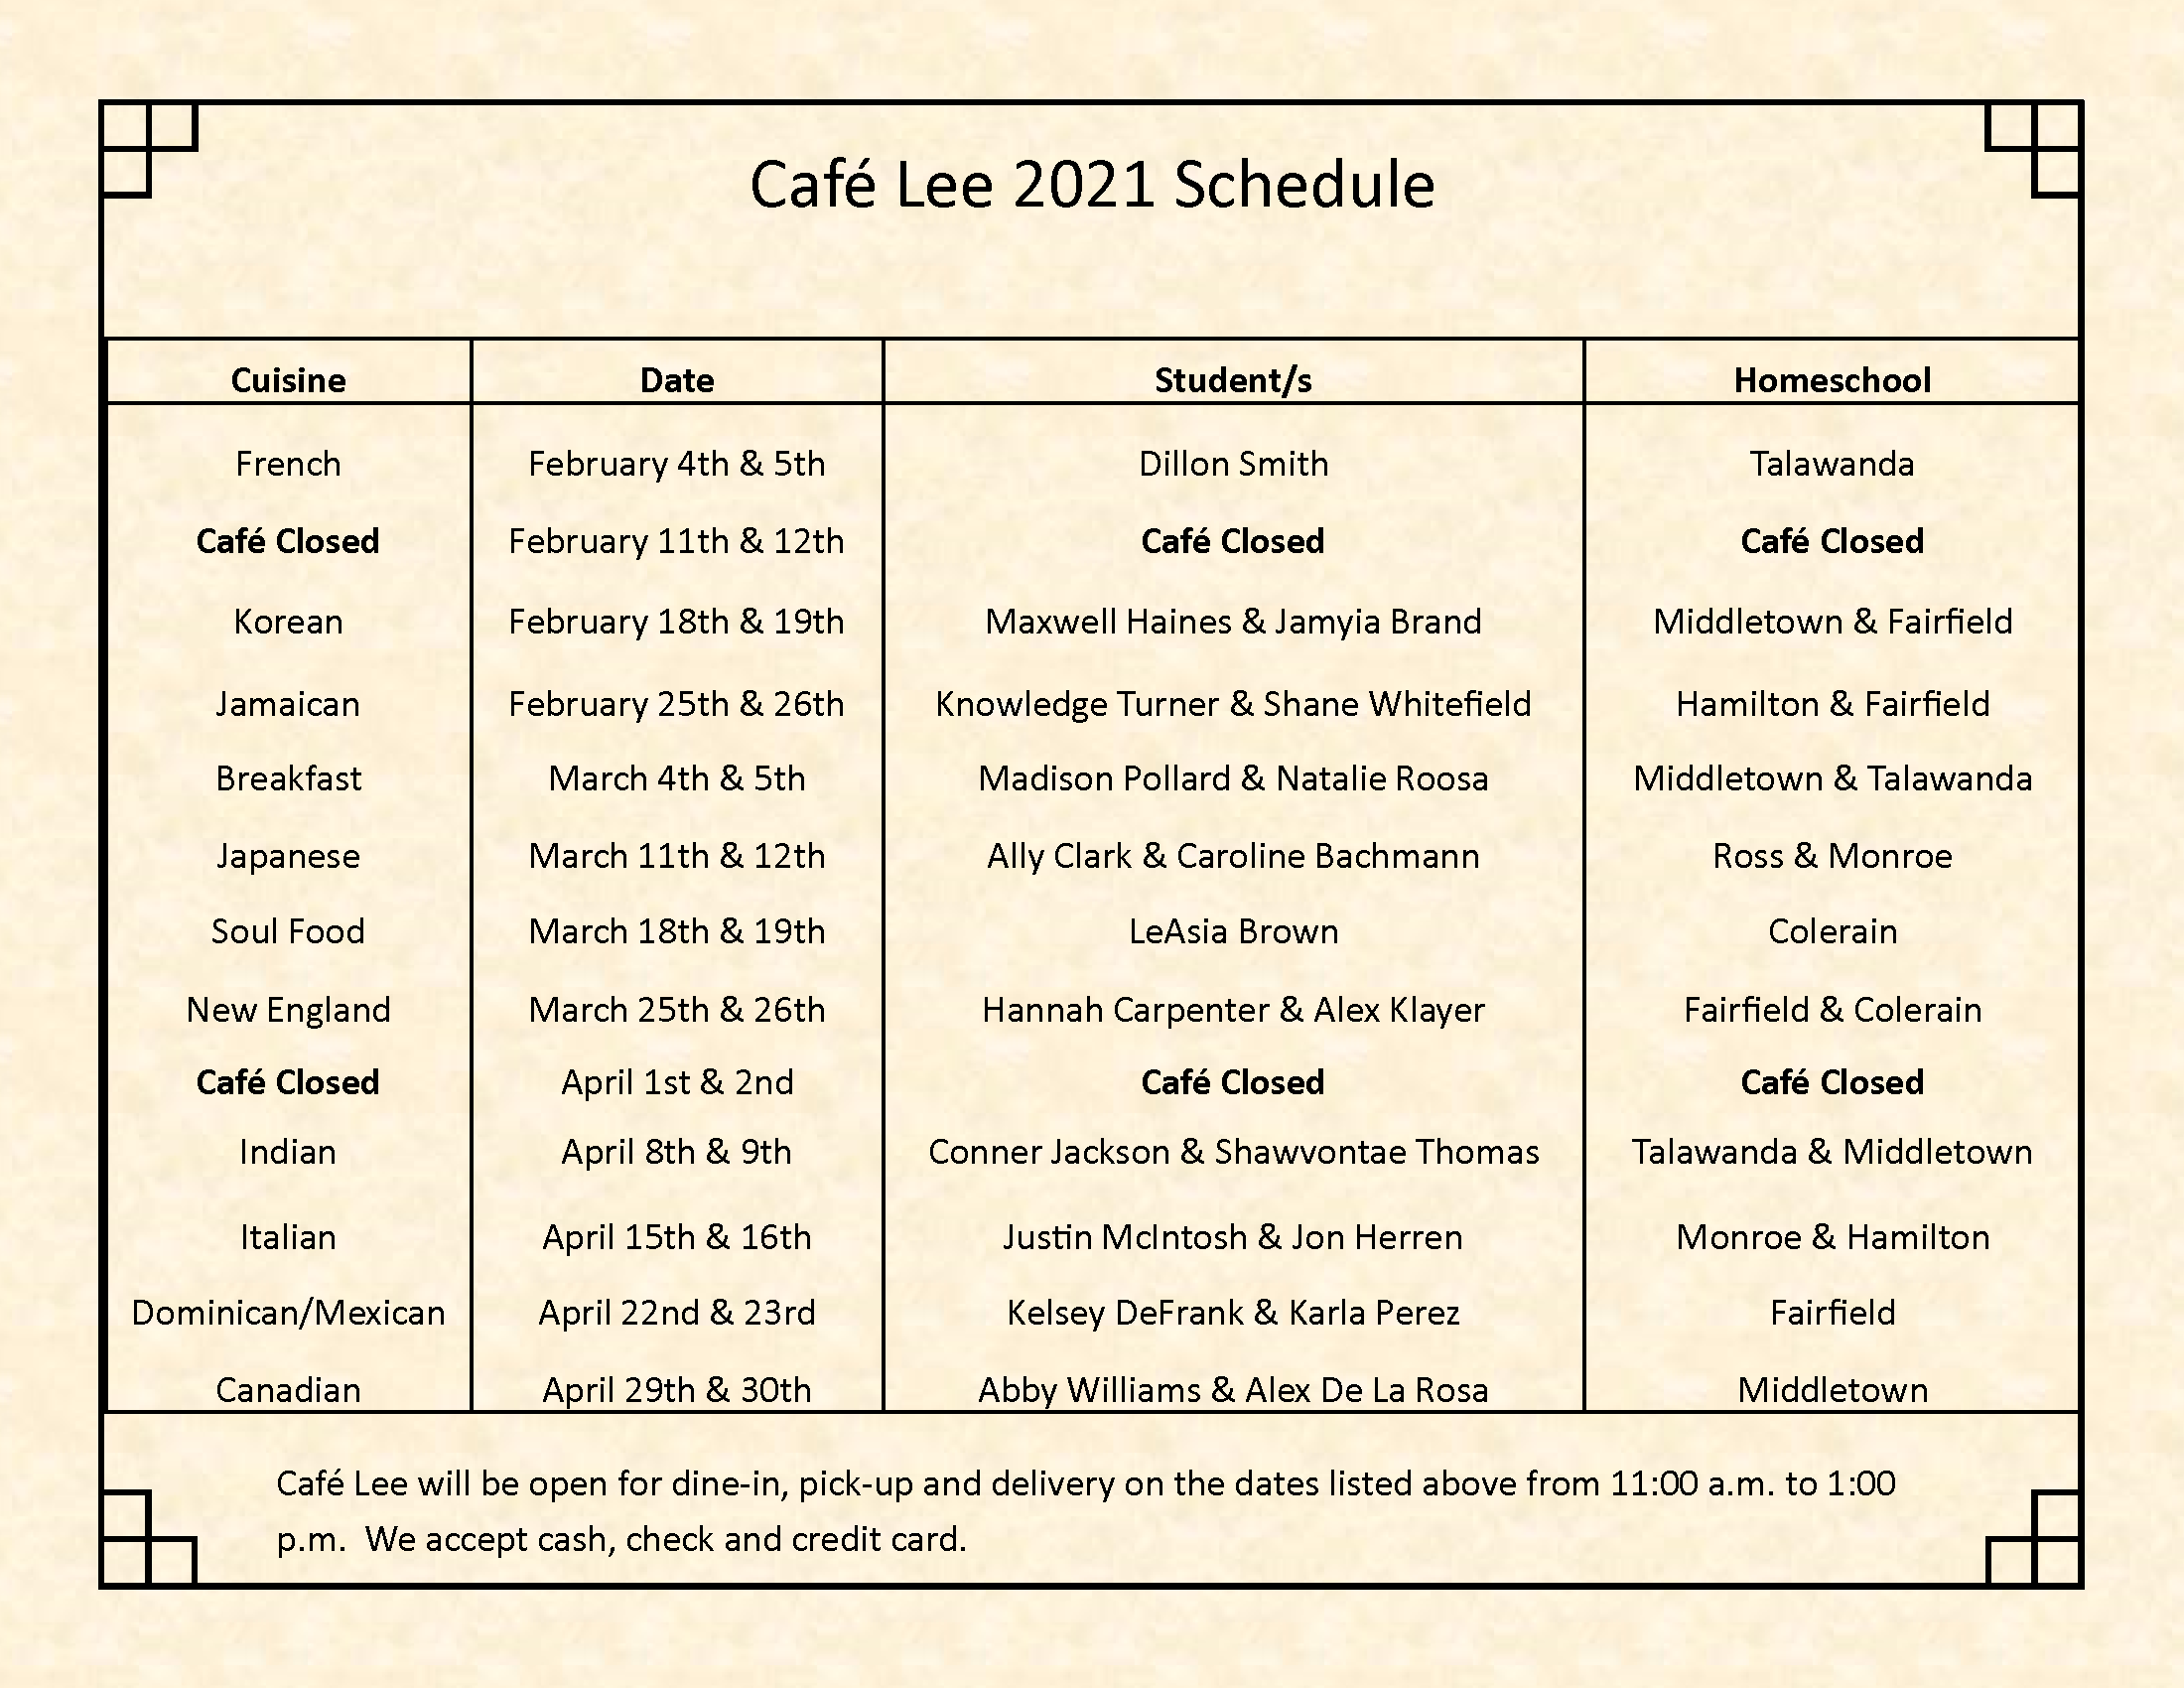 Cafe Lee 2021 Schedule